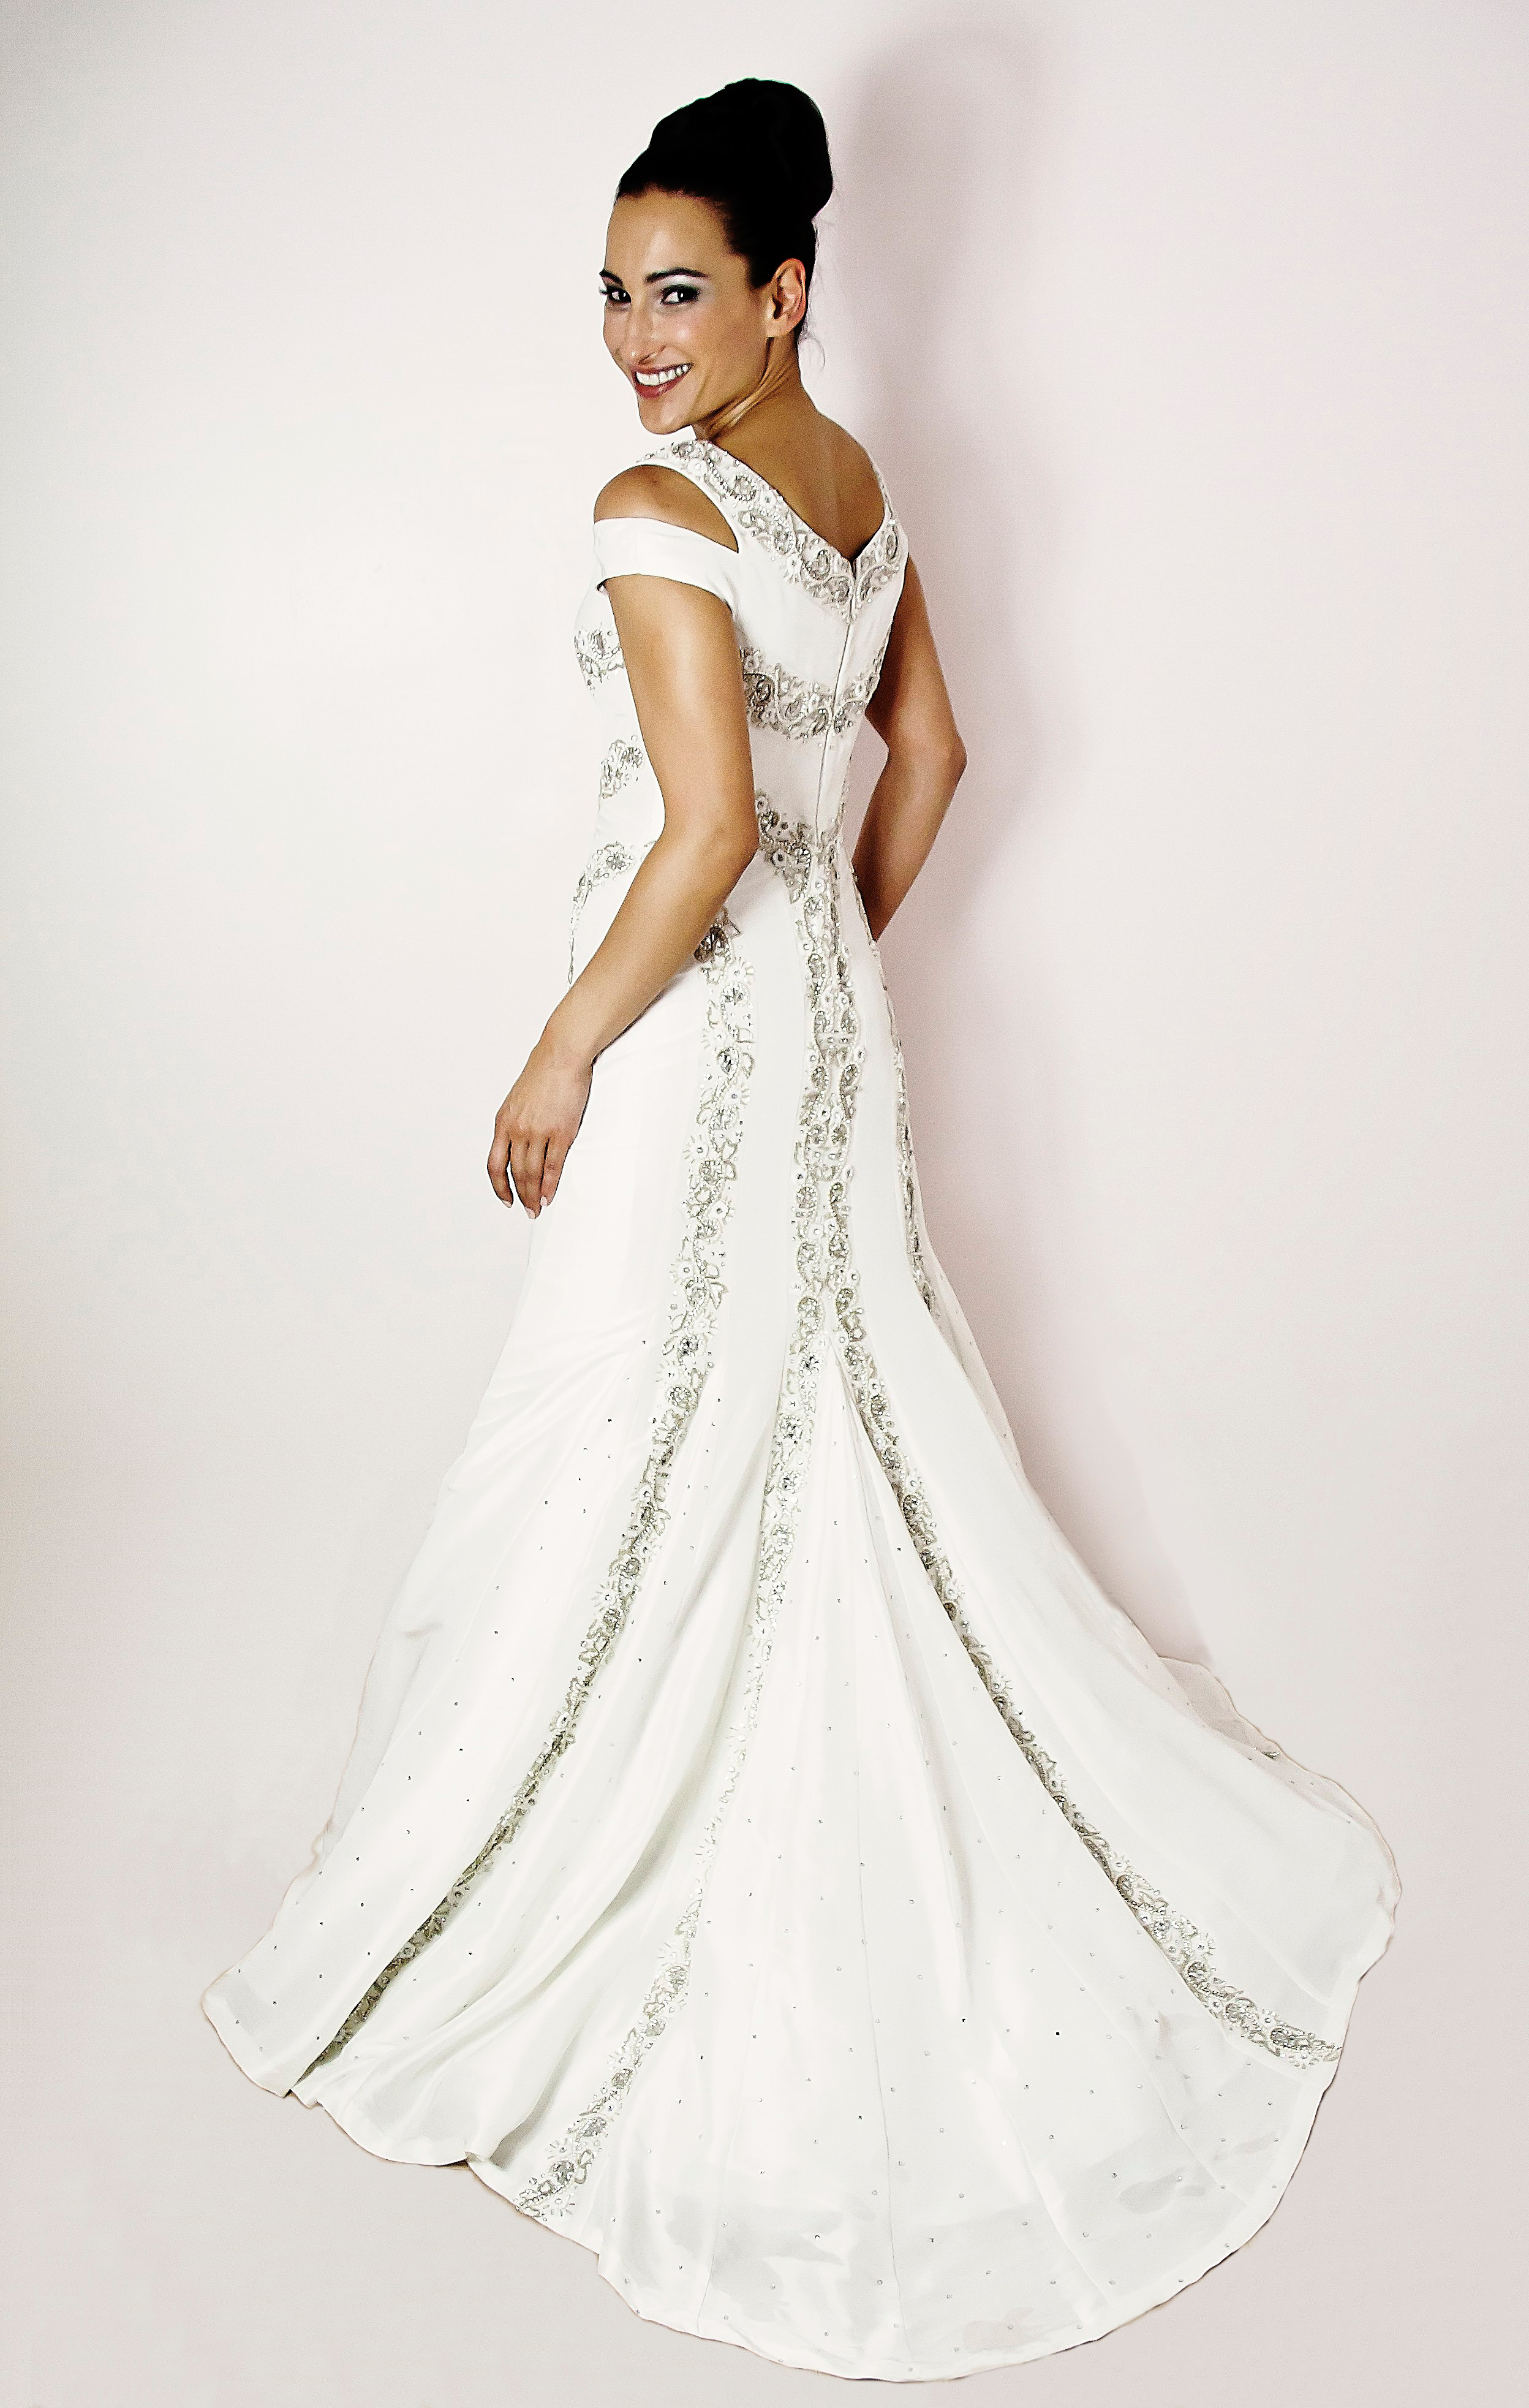 16_dress5_MG_4314-copy